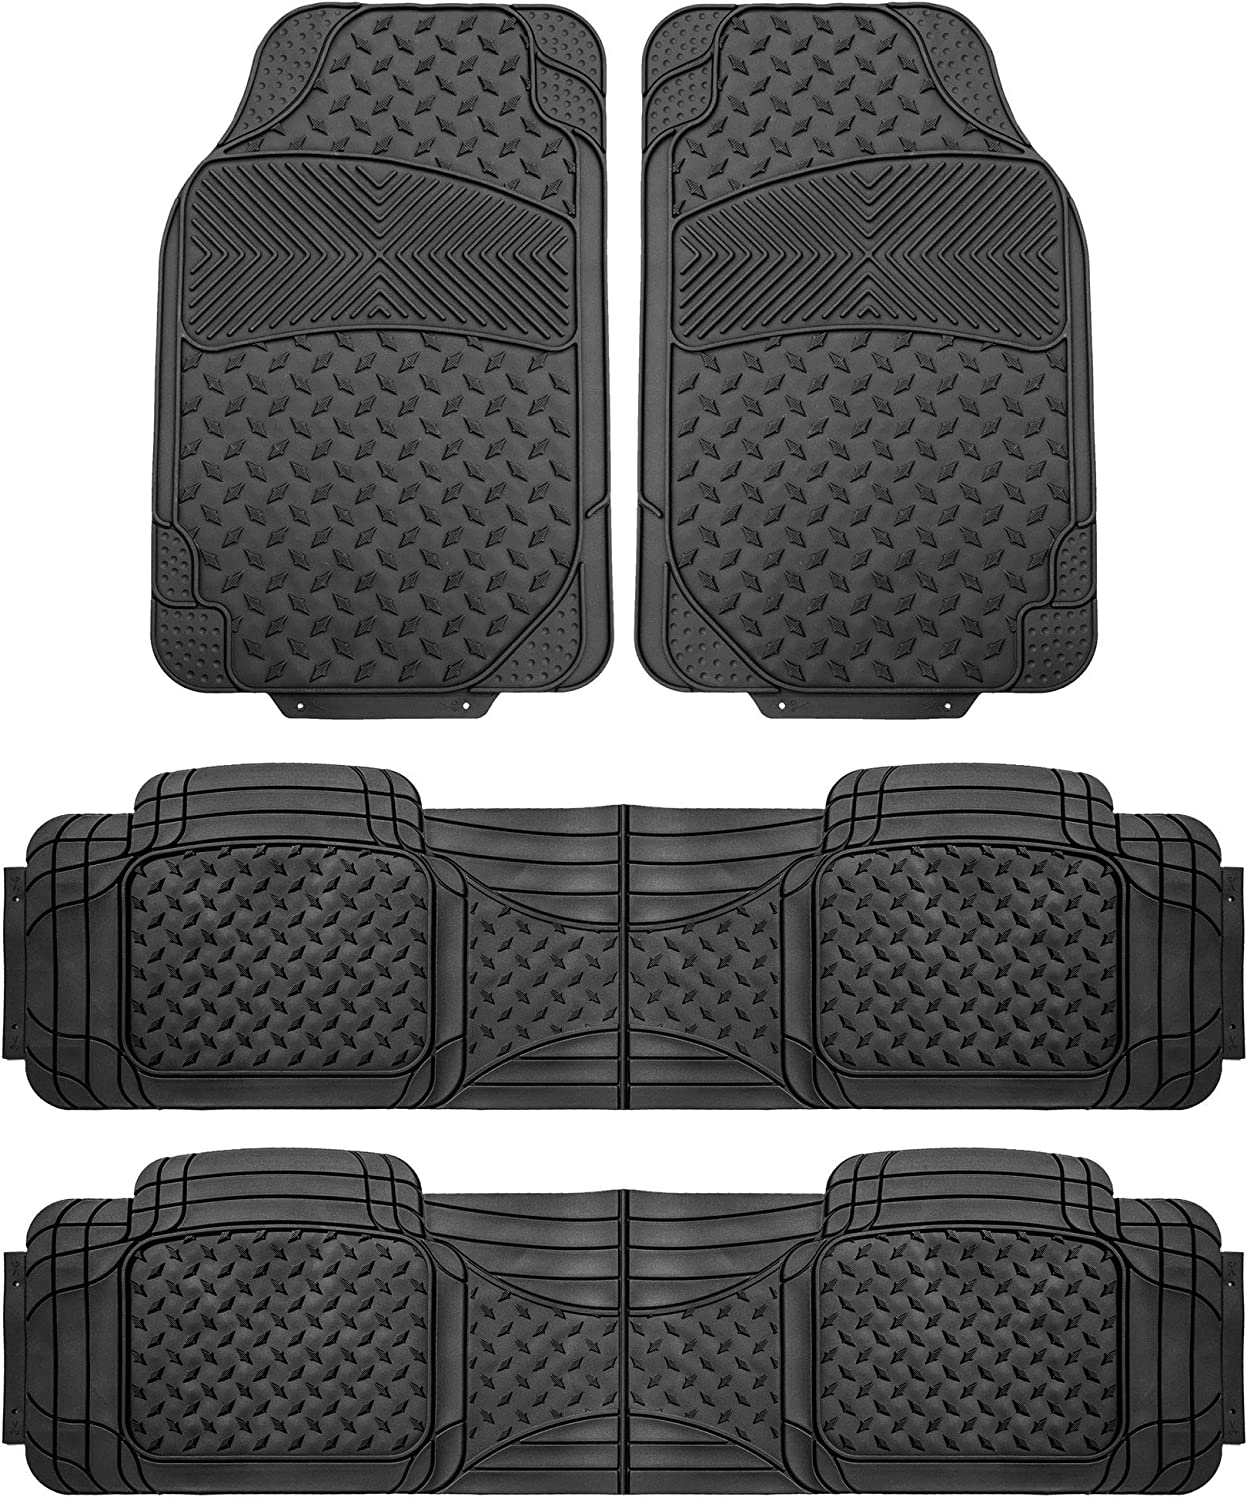 FH Group F11307BLACK-3ROW Black- 3 Row F11307BLACK Trim to Fit Weather SUV Floor Mats